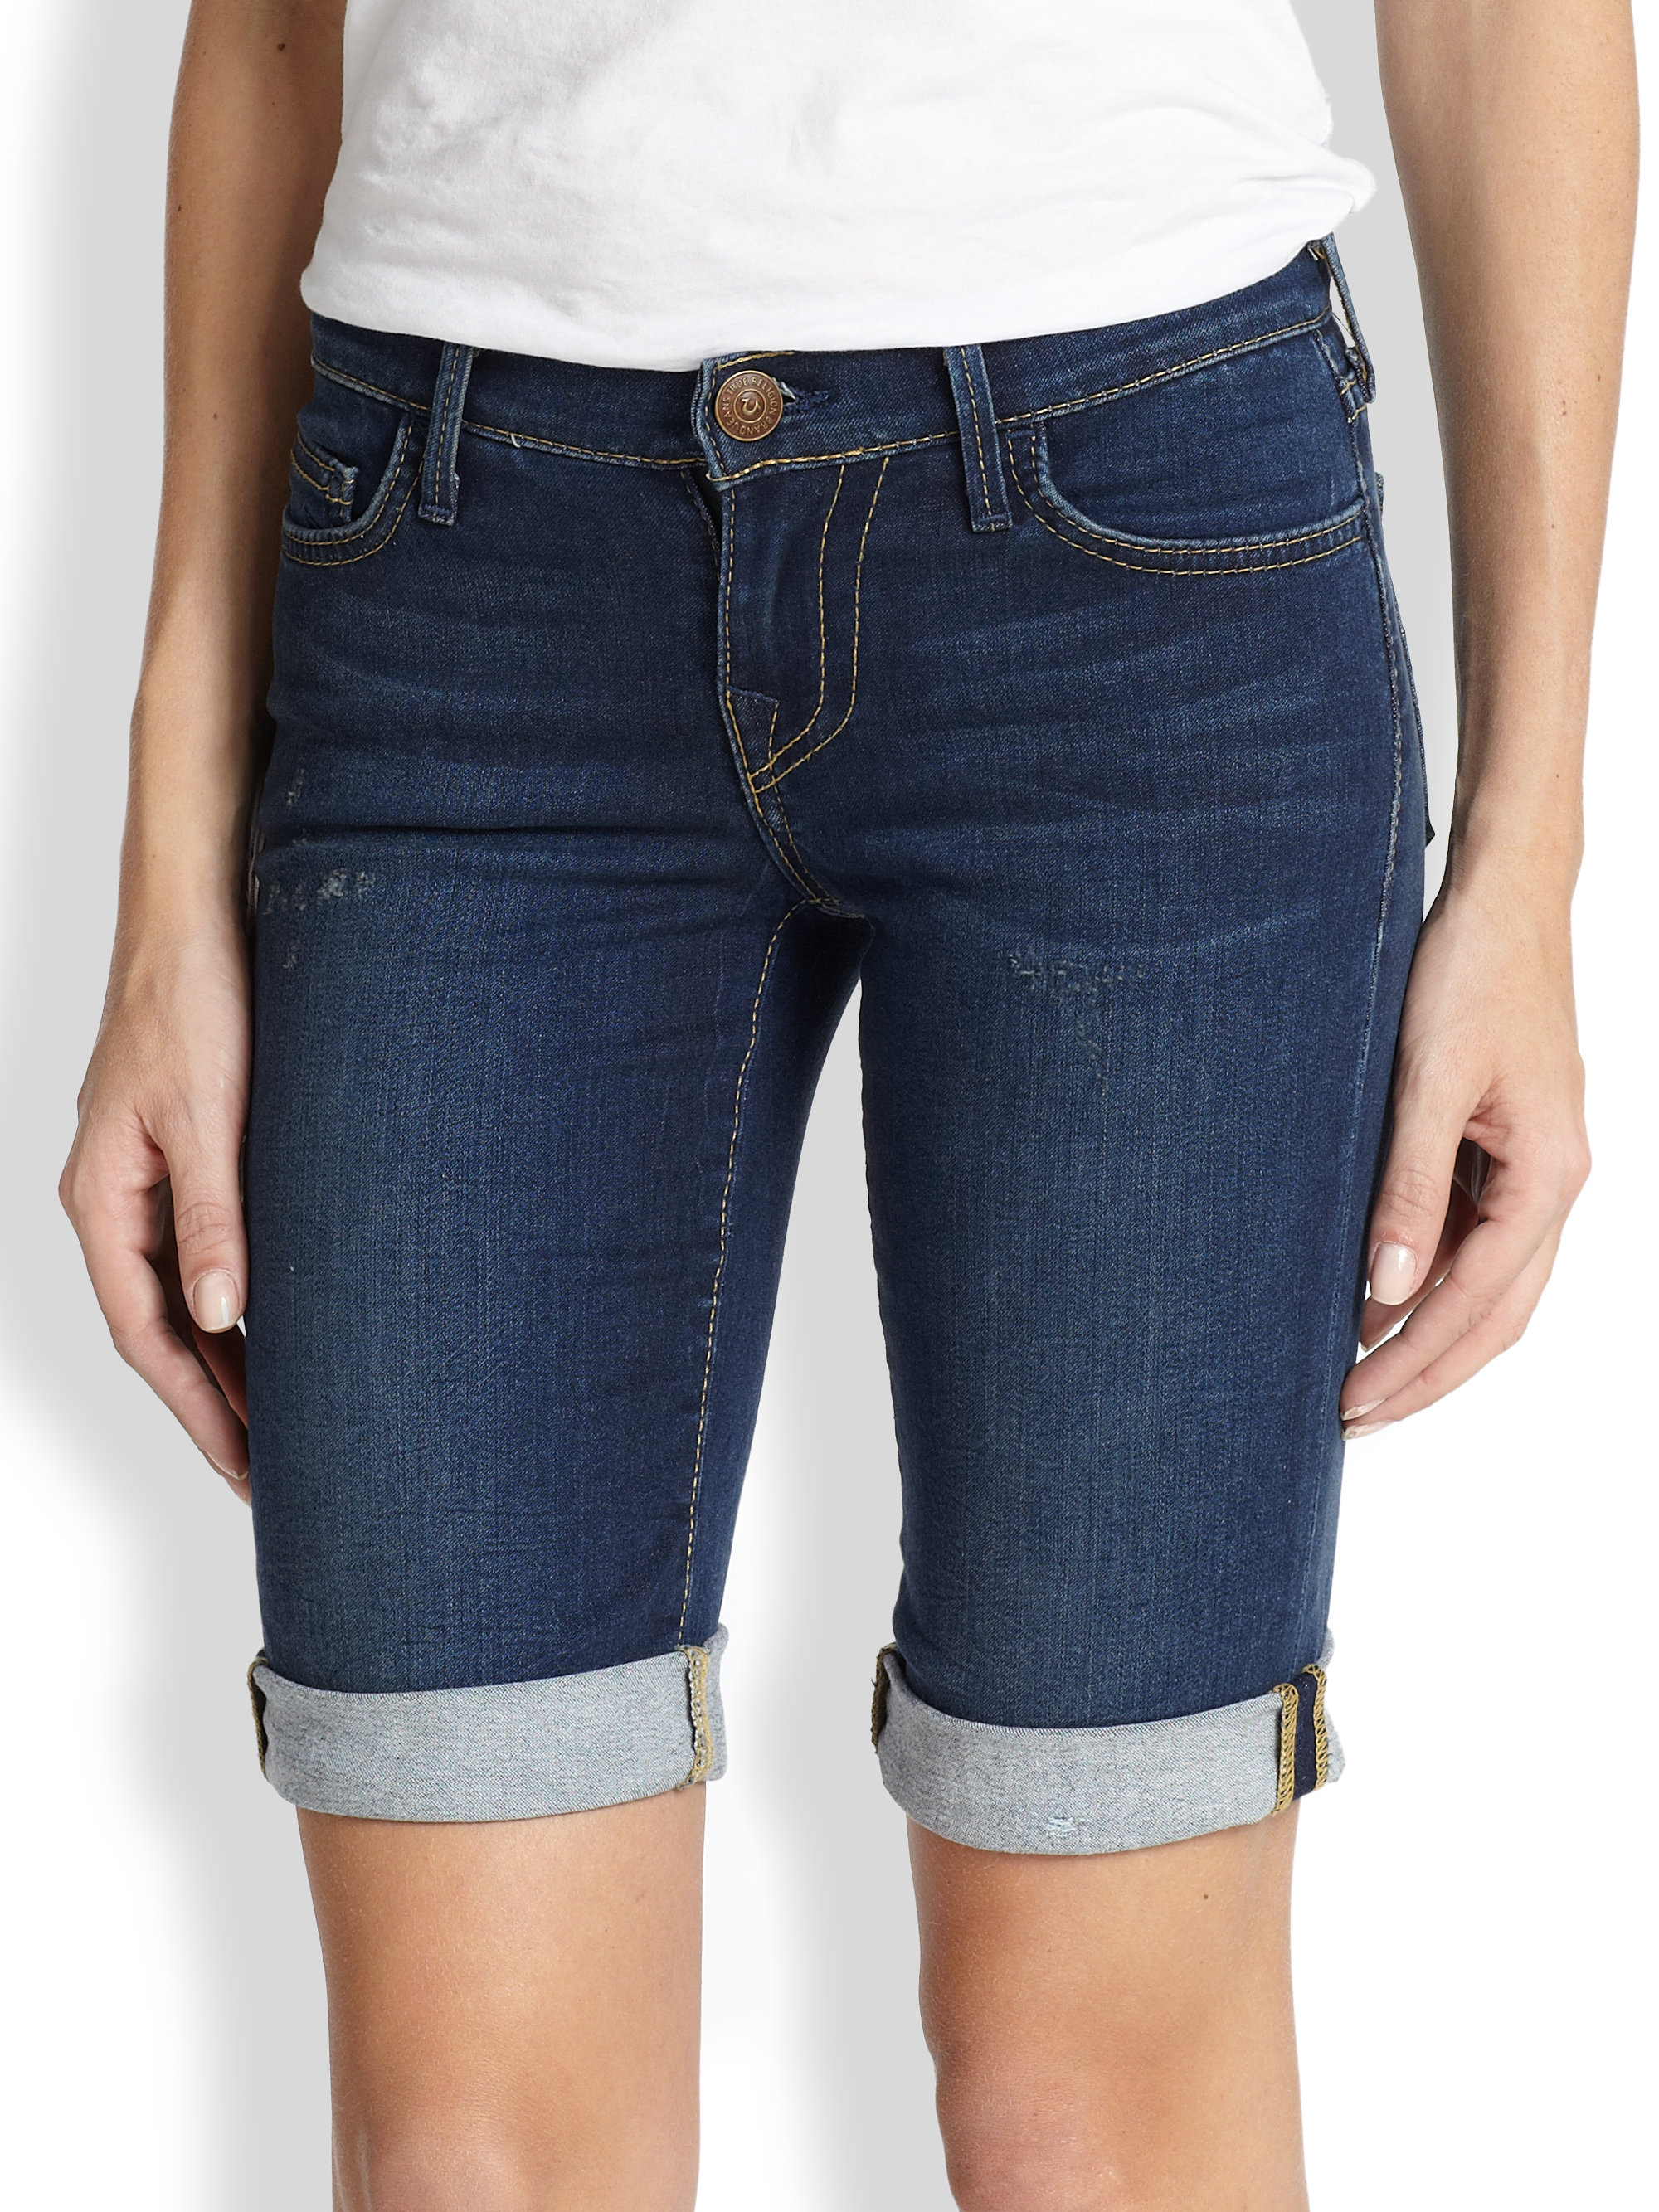 Denim Stretch Shorts - The Else